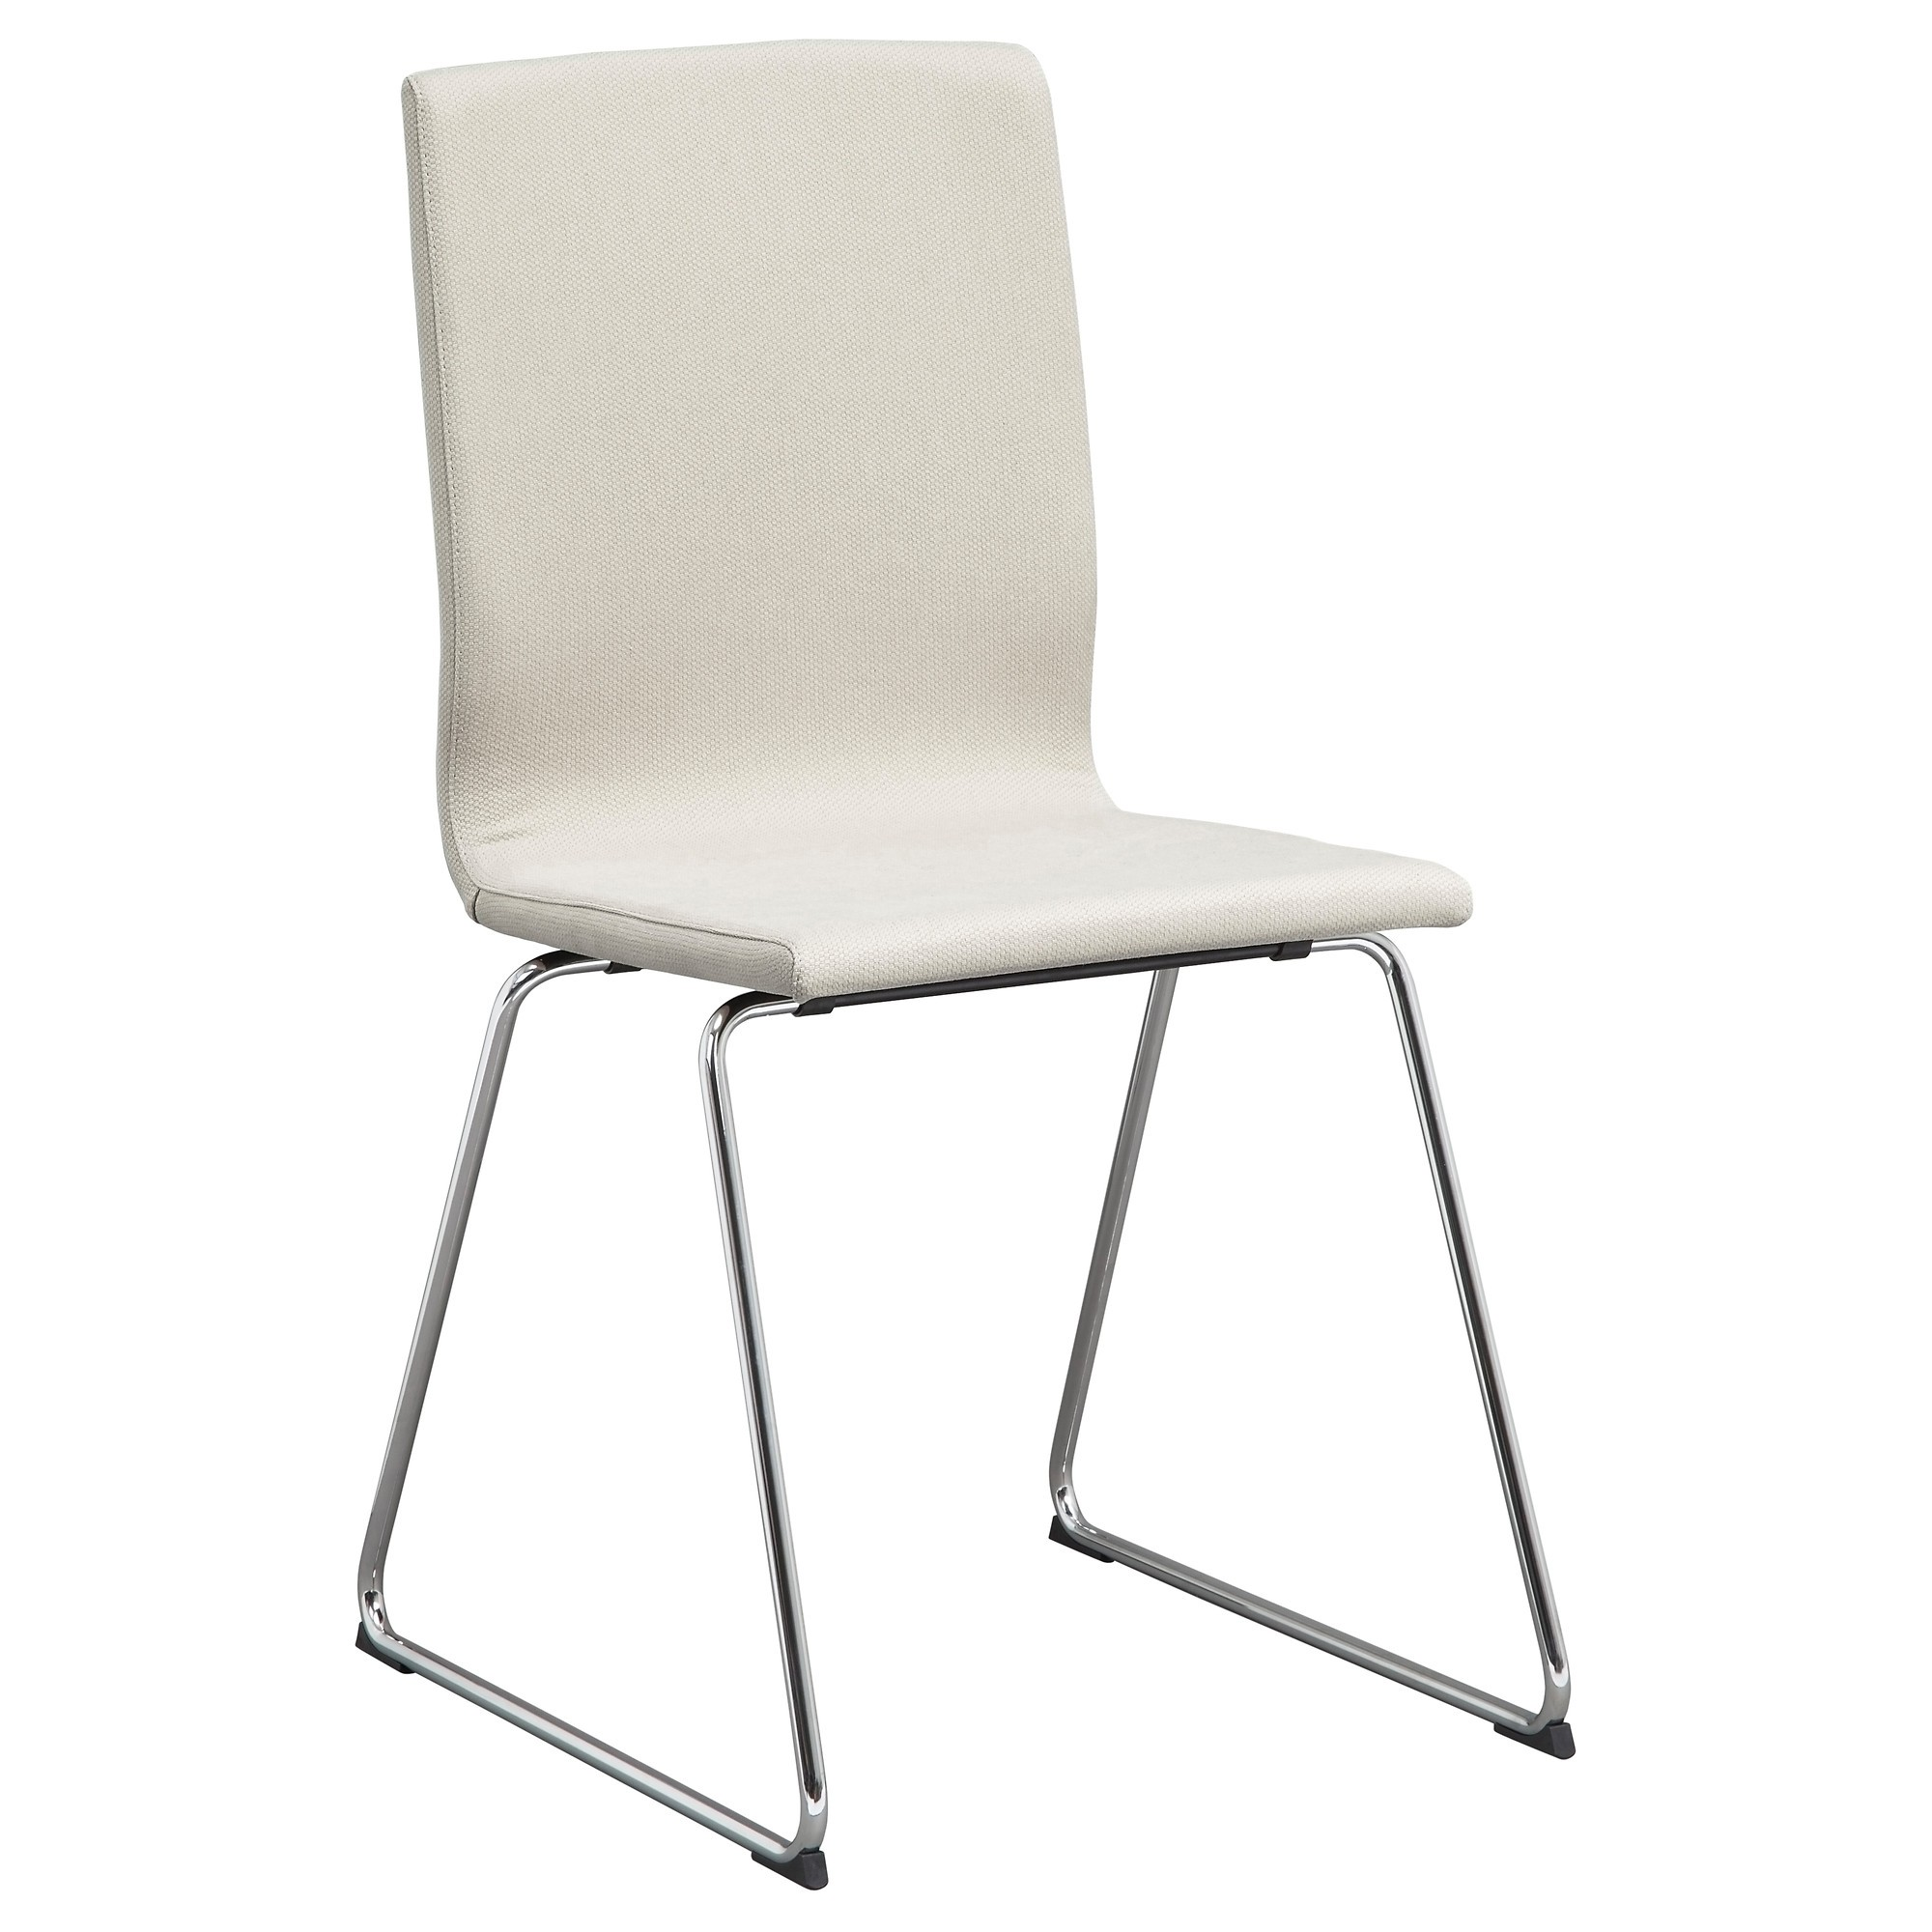 Chaise sejour ikea top chaises salle a manger chaise de for Chaise scandinave ikea